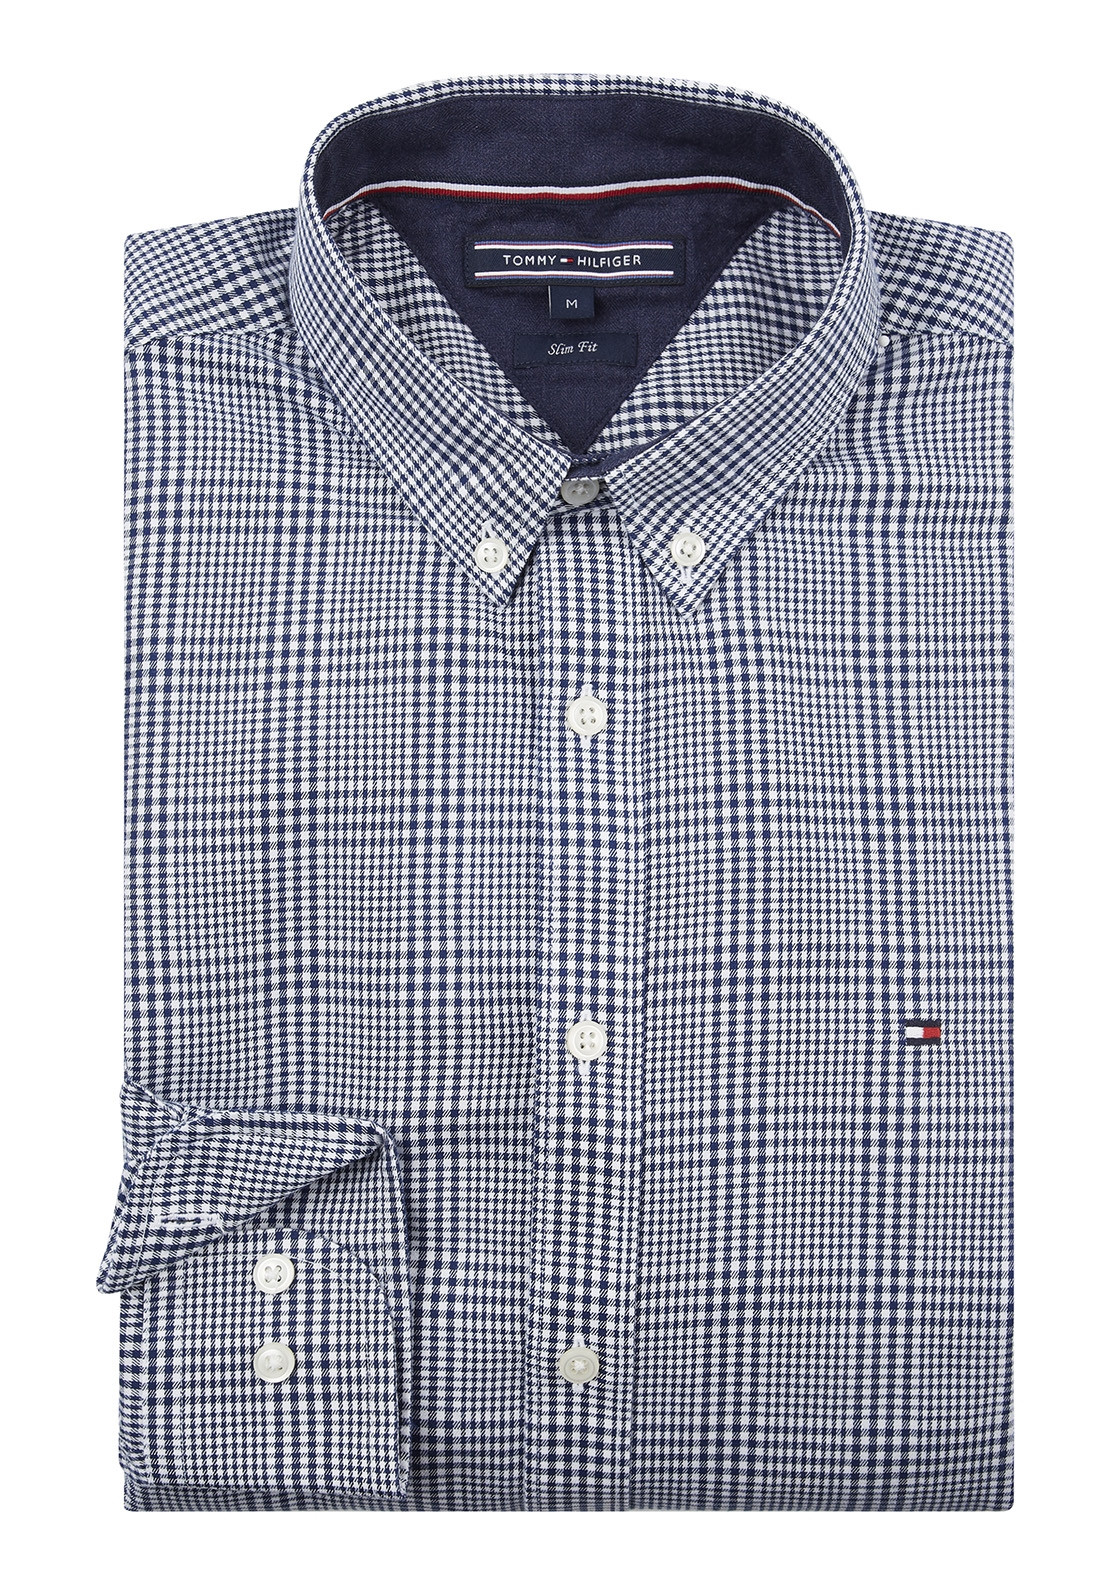 84c1d6aab Tommy Hilfiger Men's Mini Check Print Shirt, Blue. Be the first to review this  product